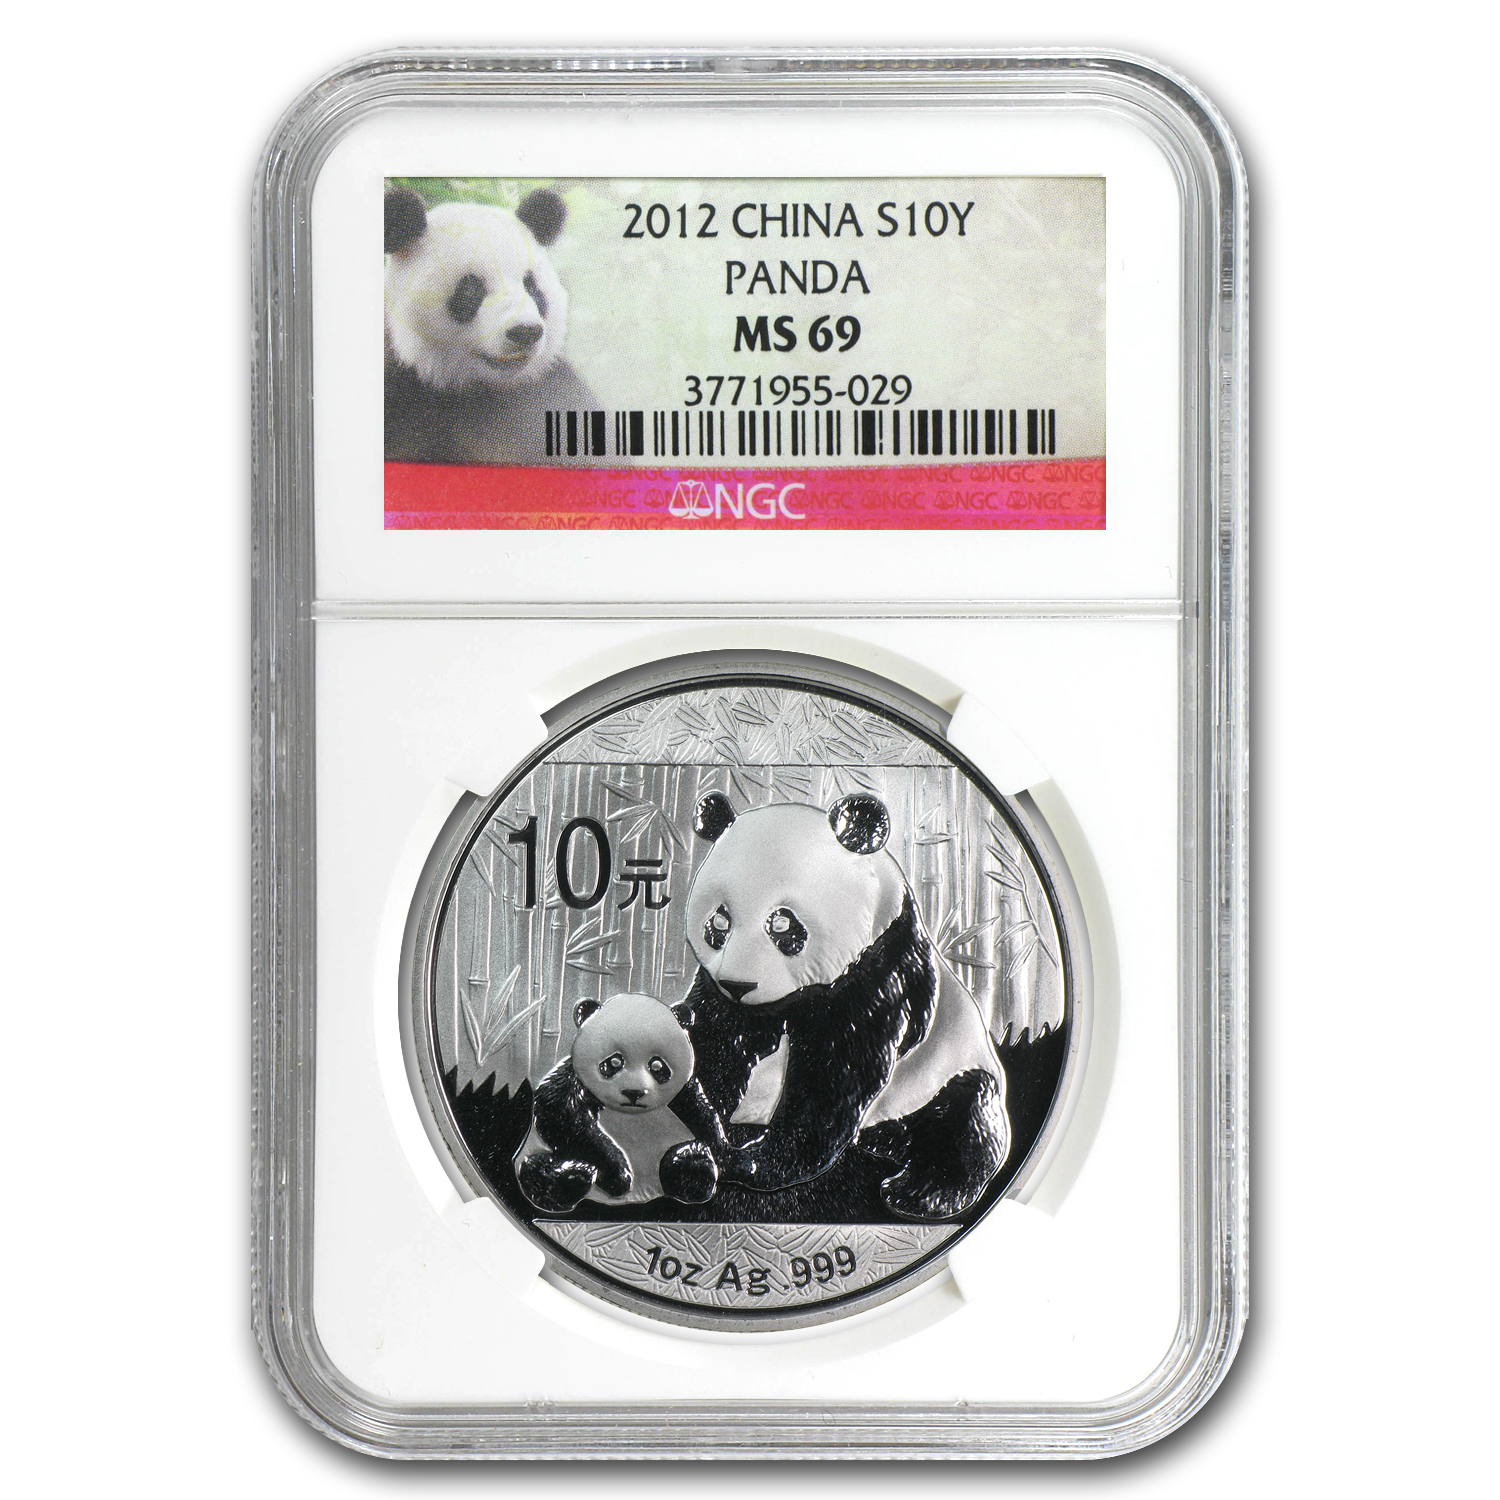 2012 China 1 oz Silver Panda MS-69 NGC